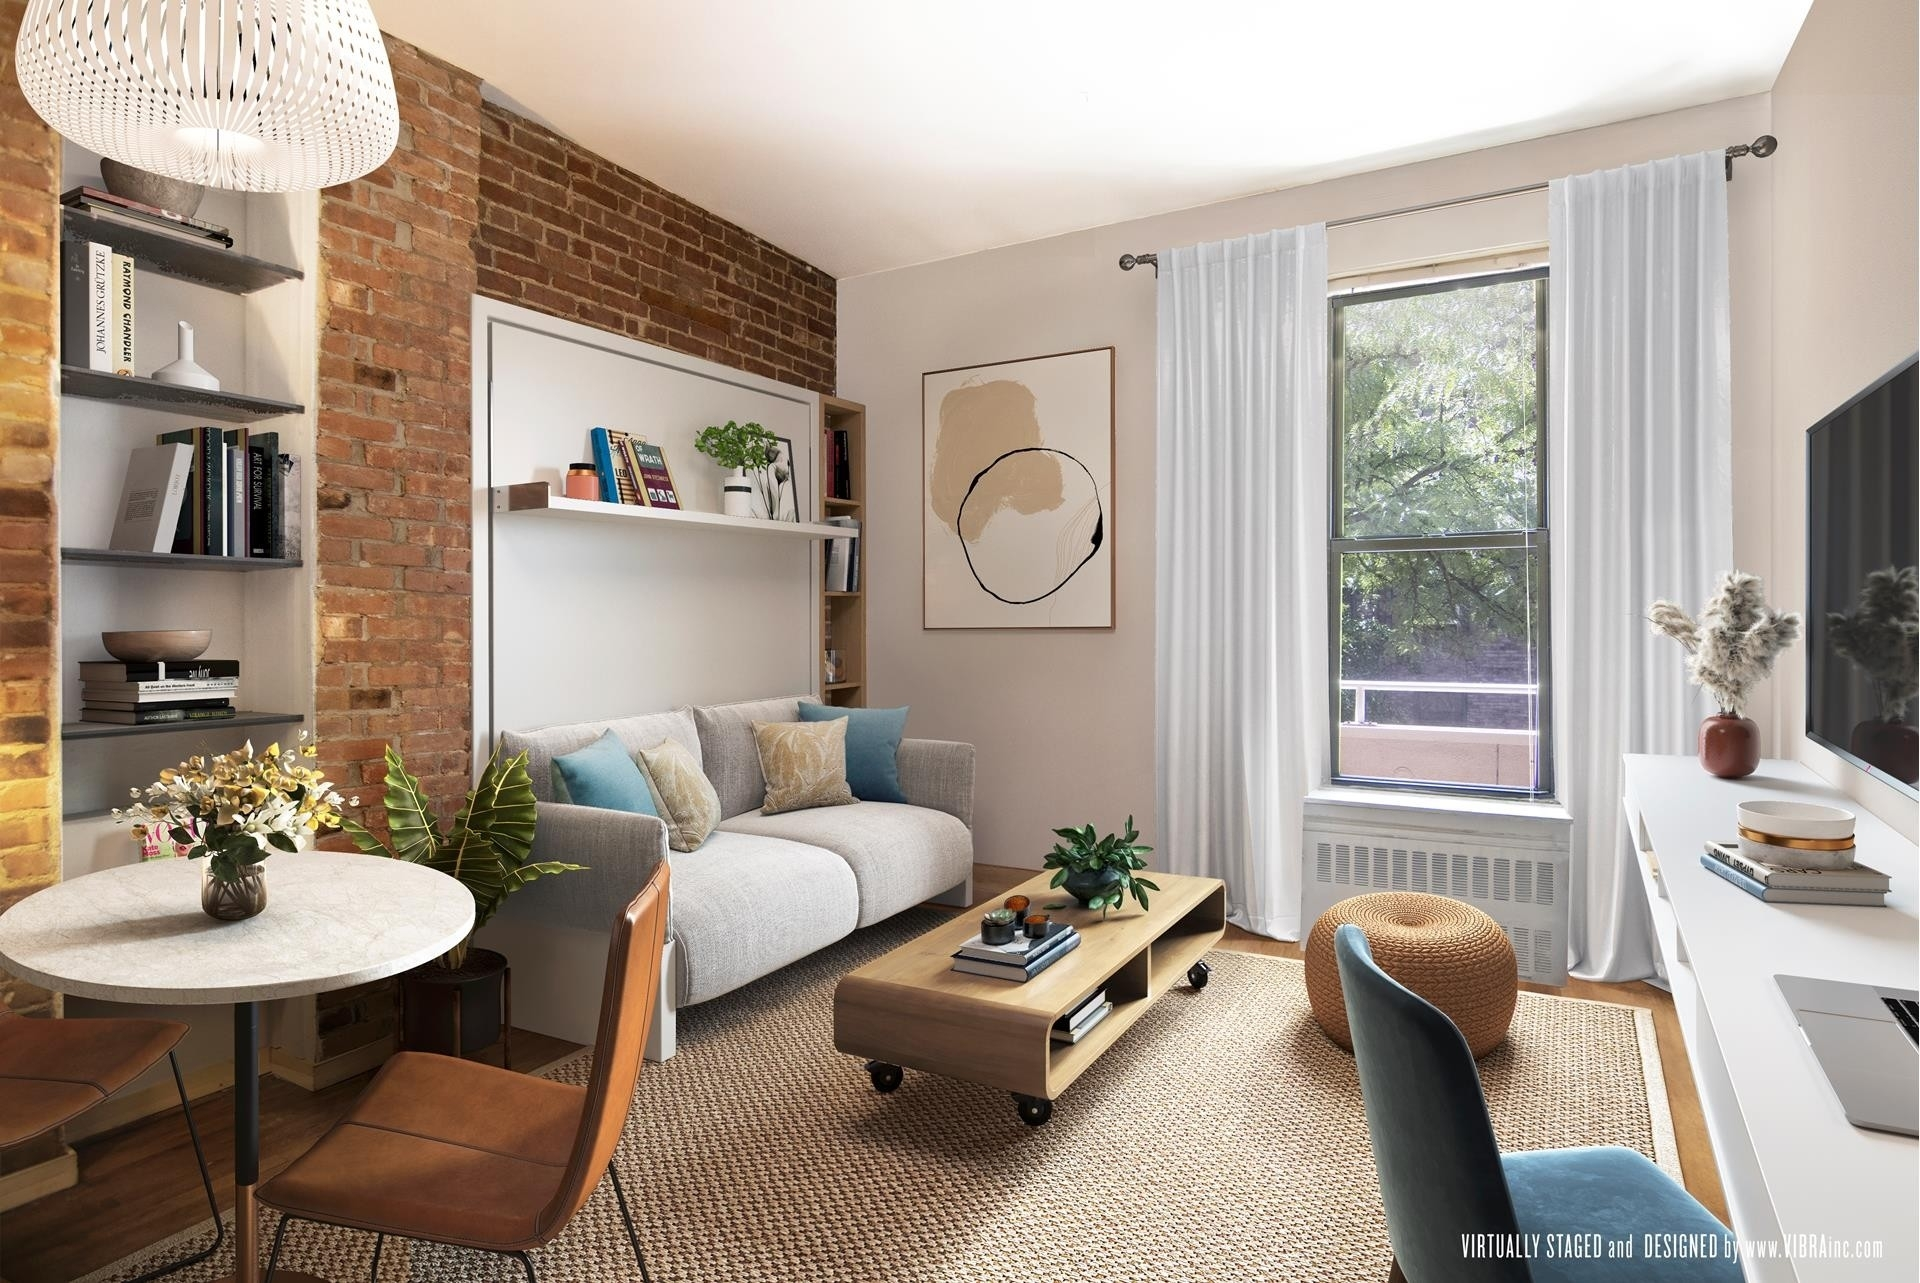 Property в SOVEREIGN, 425 E 78TH ST , 3C Верхняя Ист-Сайд, New York, NY 10075